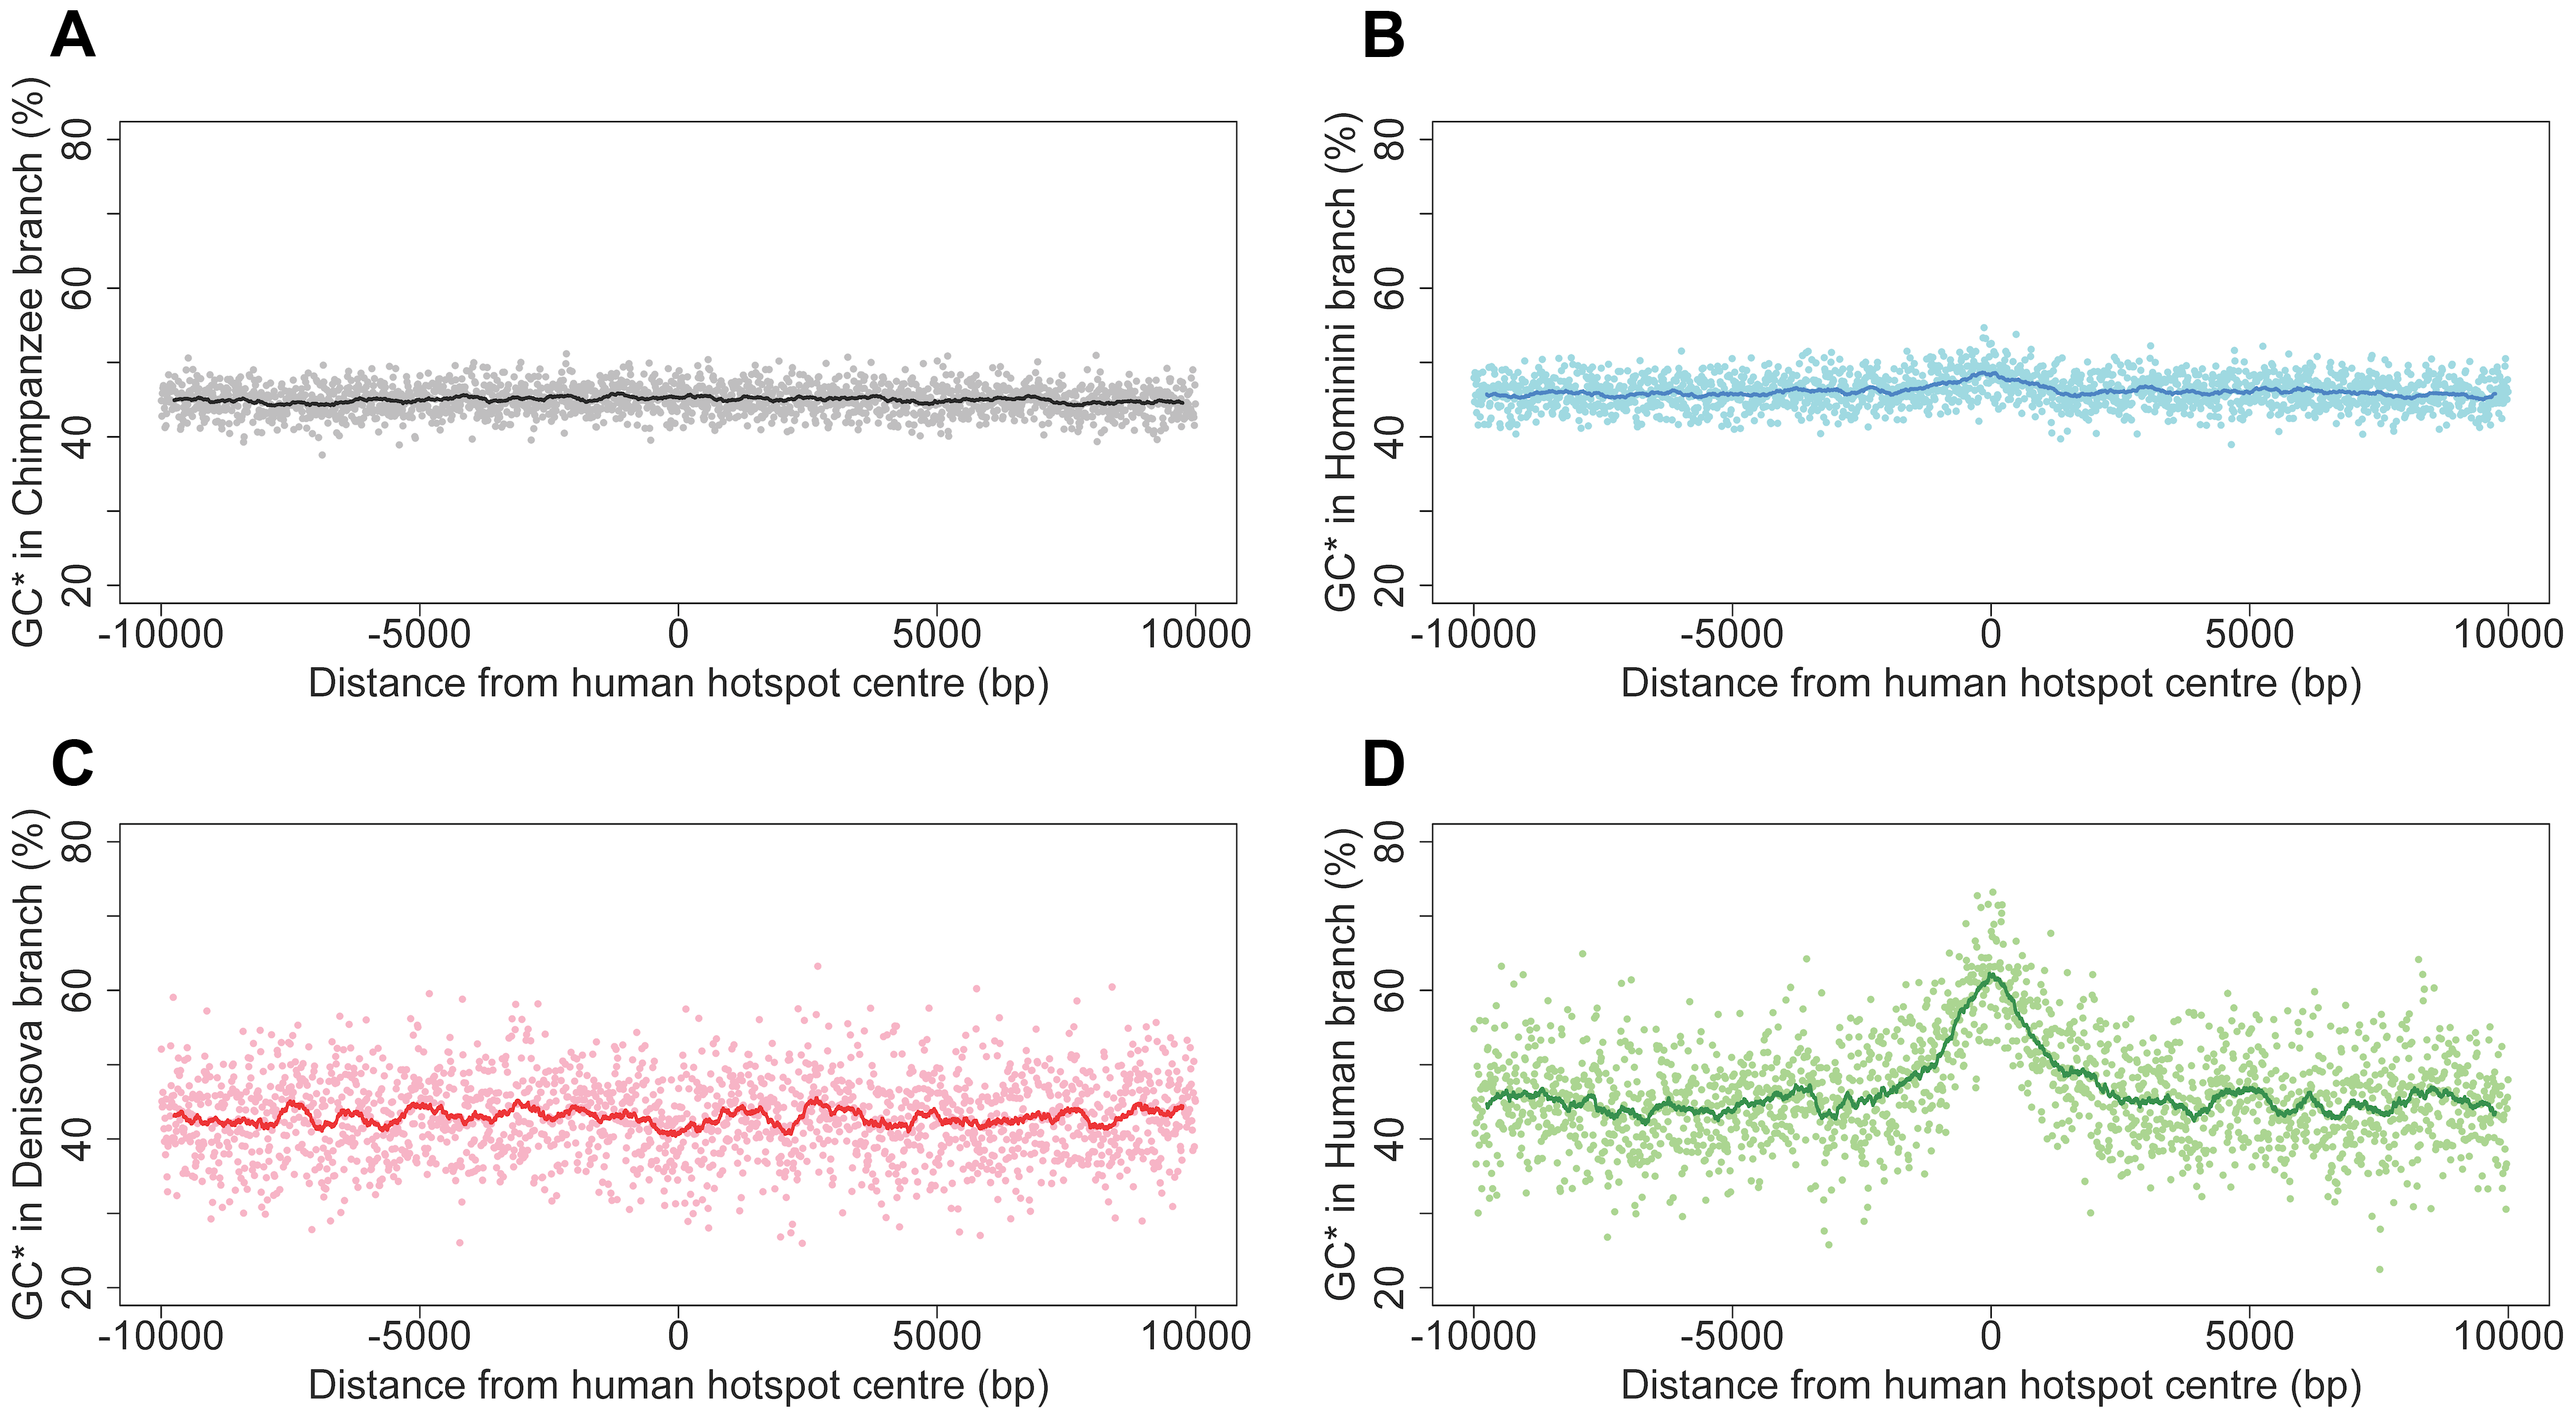 Equilibrium GC-content (GC*) around human recombination hotspots in different branches of the phylogeny.